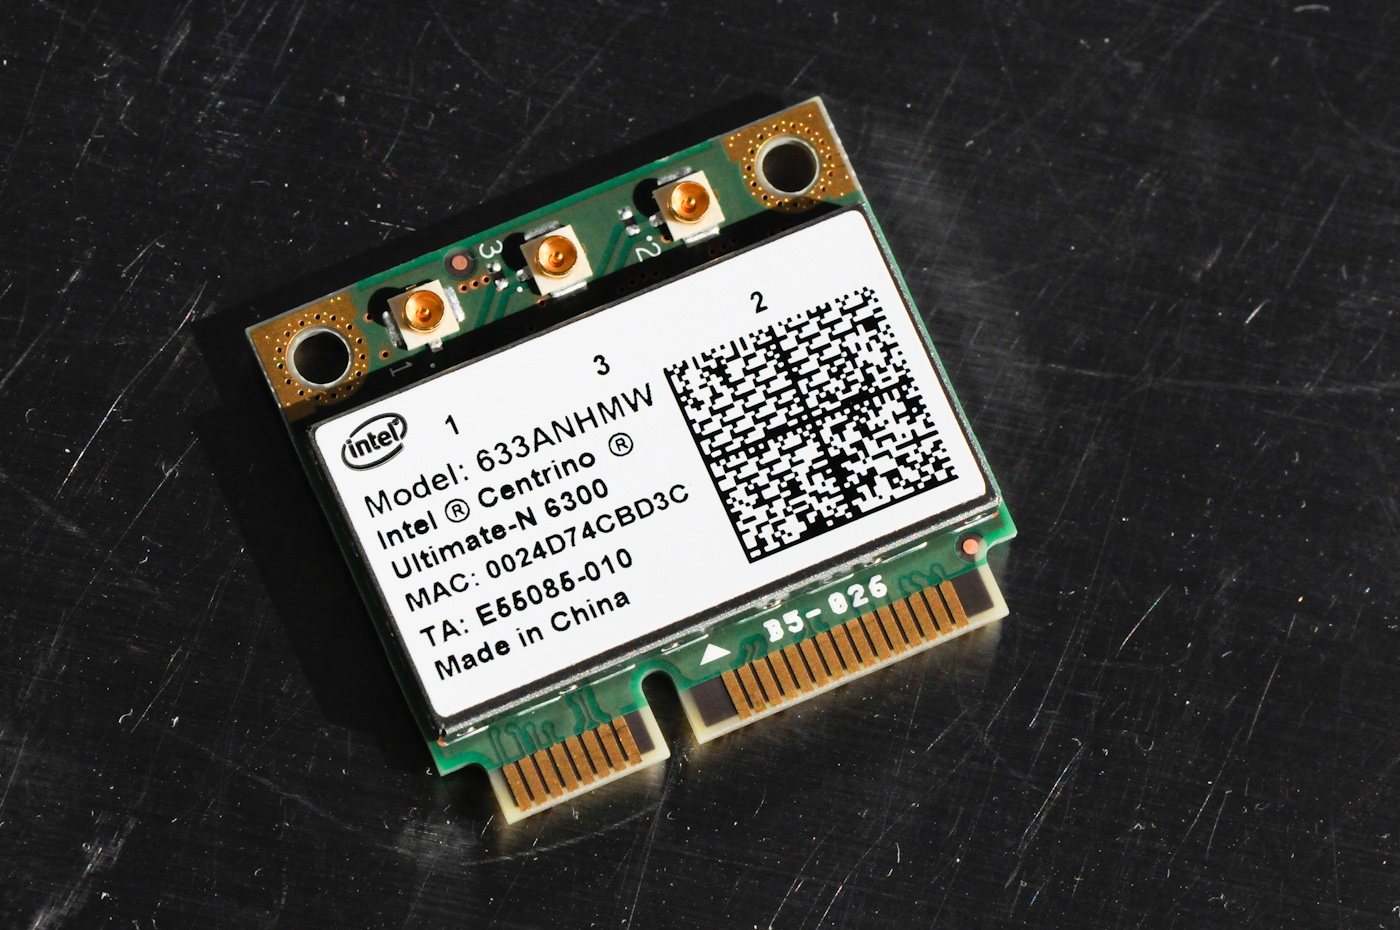 Intel wireless network adapter driver